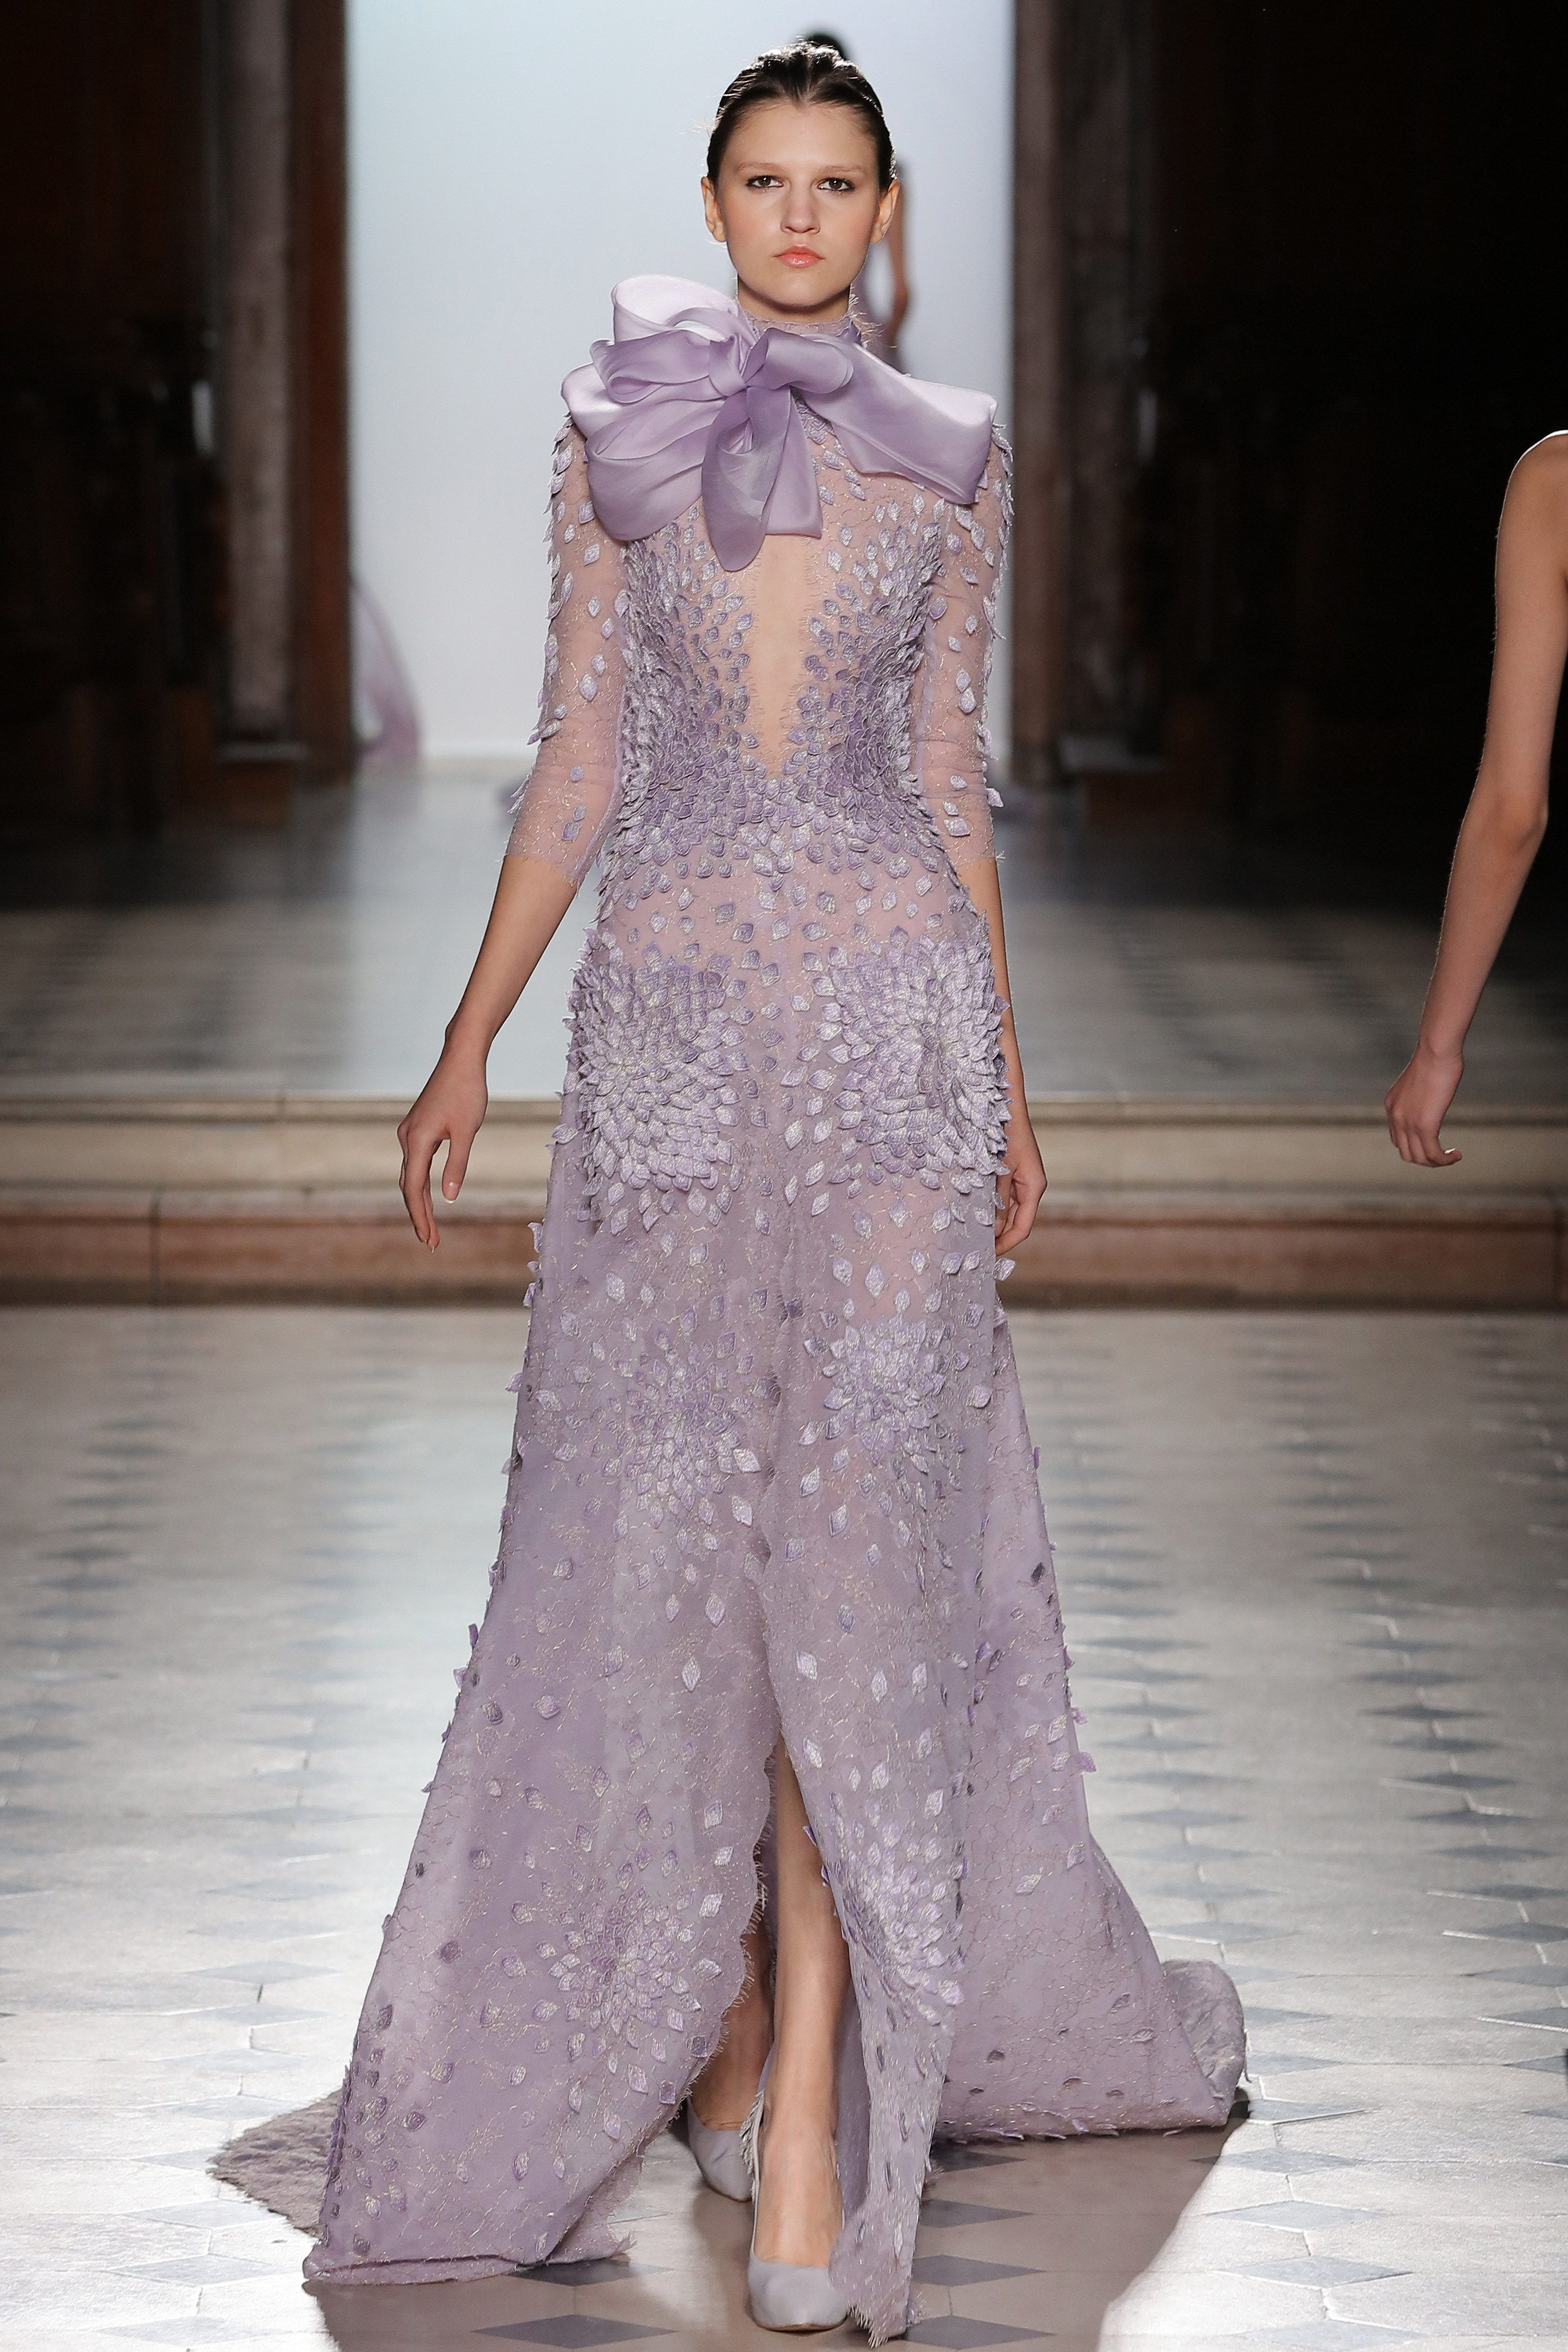 Tony Ward Couture I Spring Summer 2018 Lilac Dress In Lace Weddingku Magazine Final Edition A New Beginning Featuring 3d Silk Fractals Embroideries And An Organza Bow On The Neck